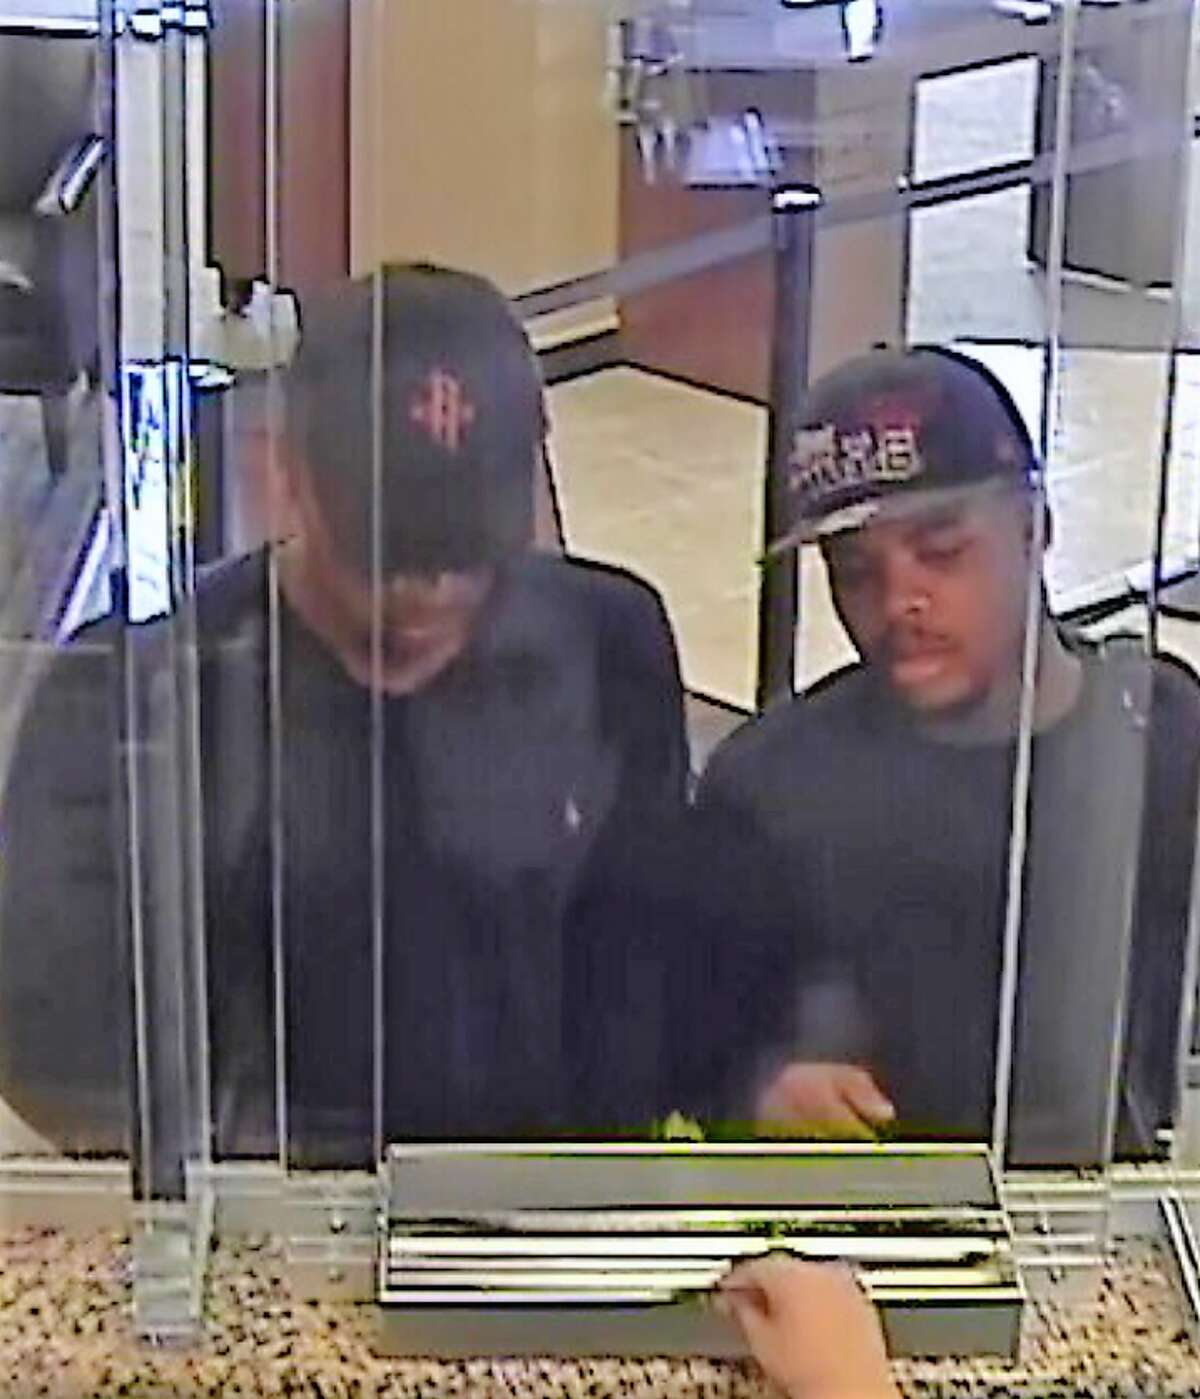 Two men attempted to rob a Chase Bank in West Houston on Aug. 9, 2017 but left empty handed. The teller was behind